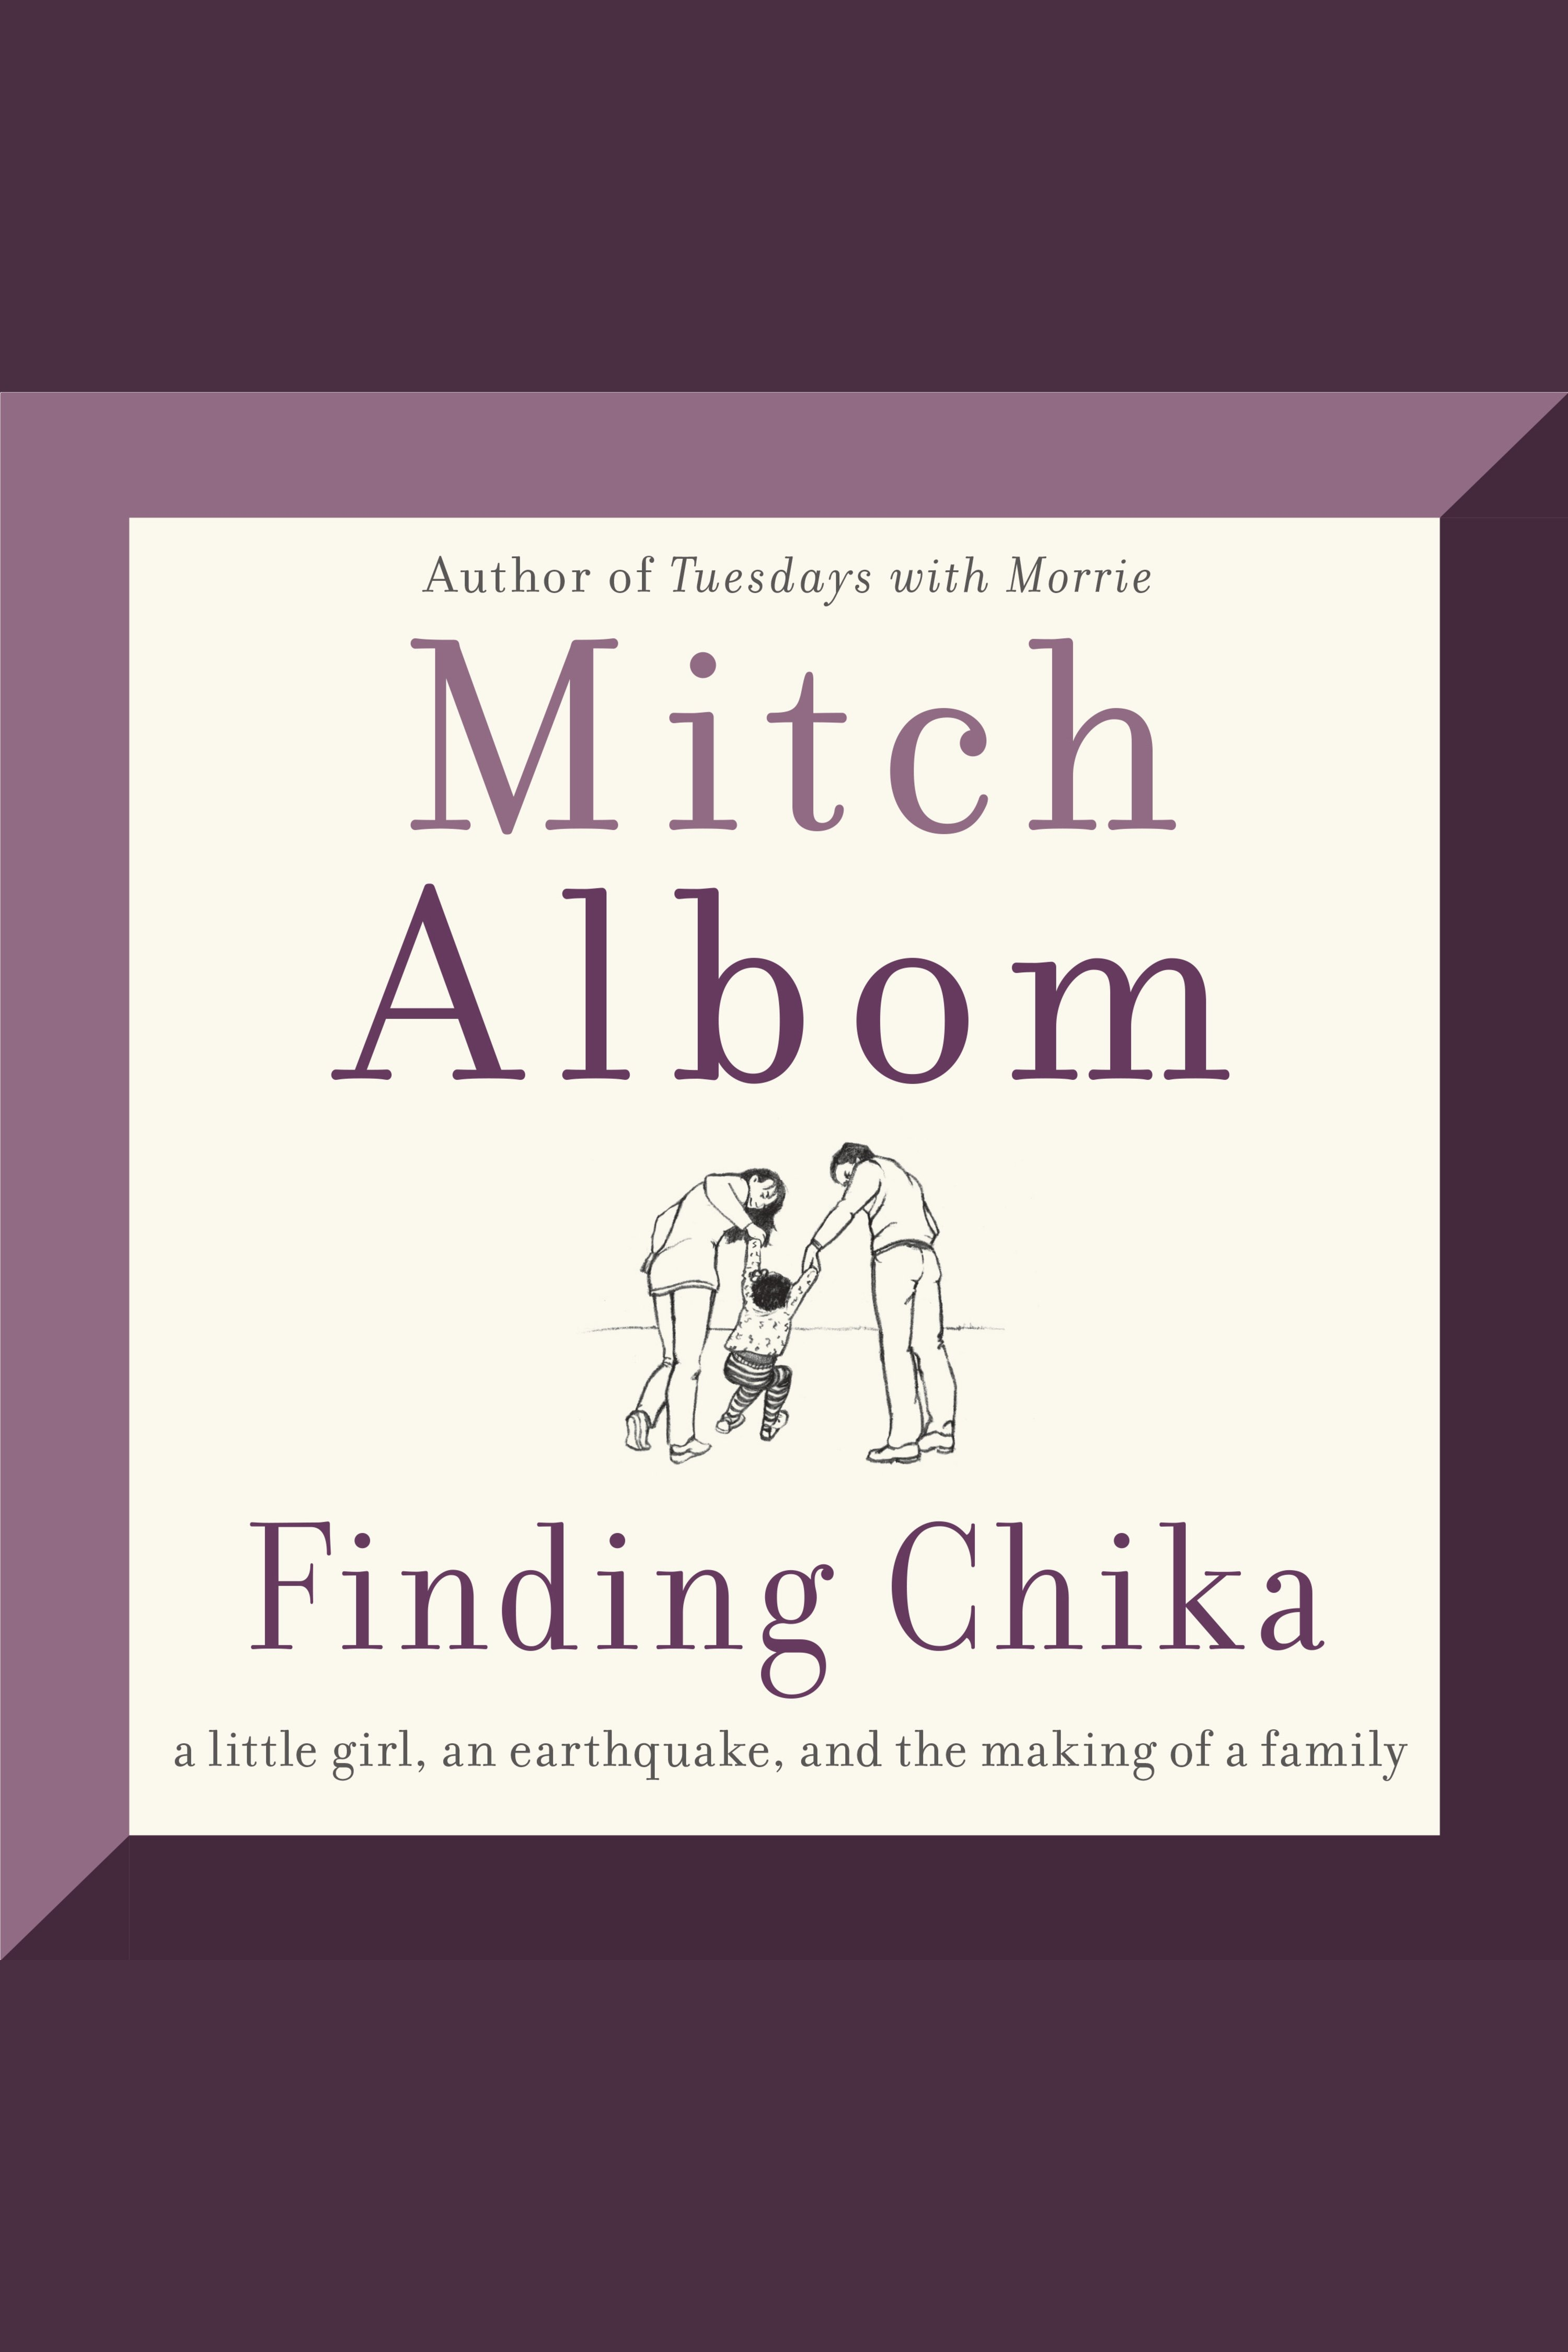 Finding Chika A Little Girl, an Earthquake, and the Making of a Family